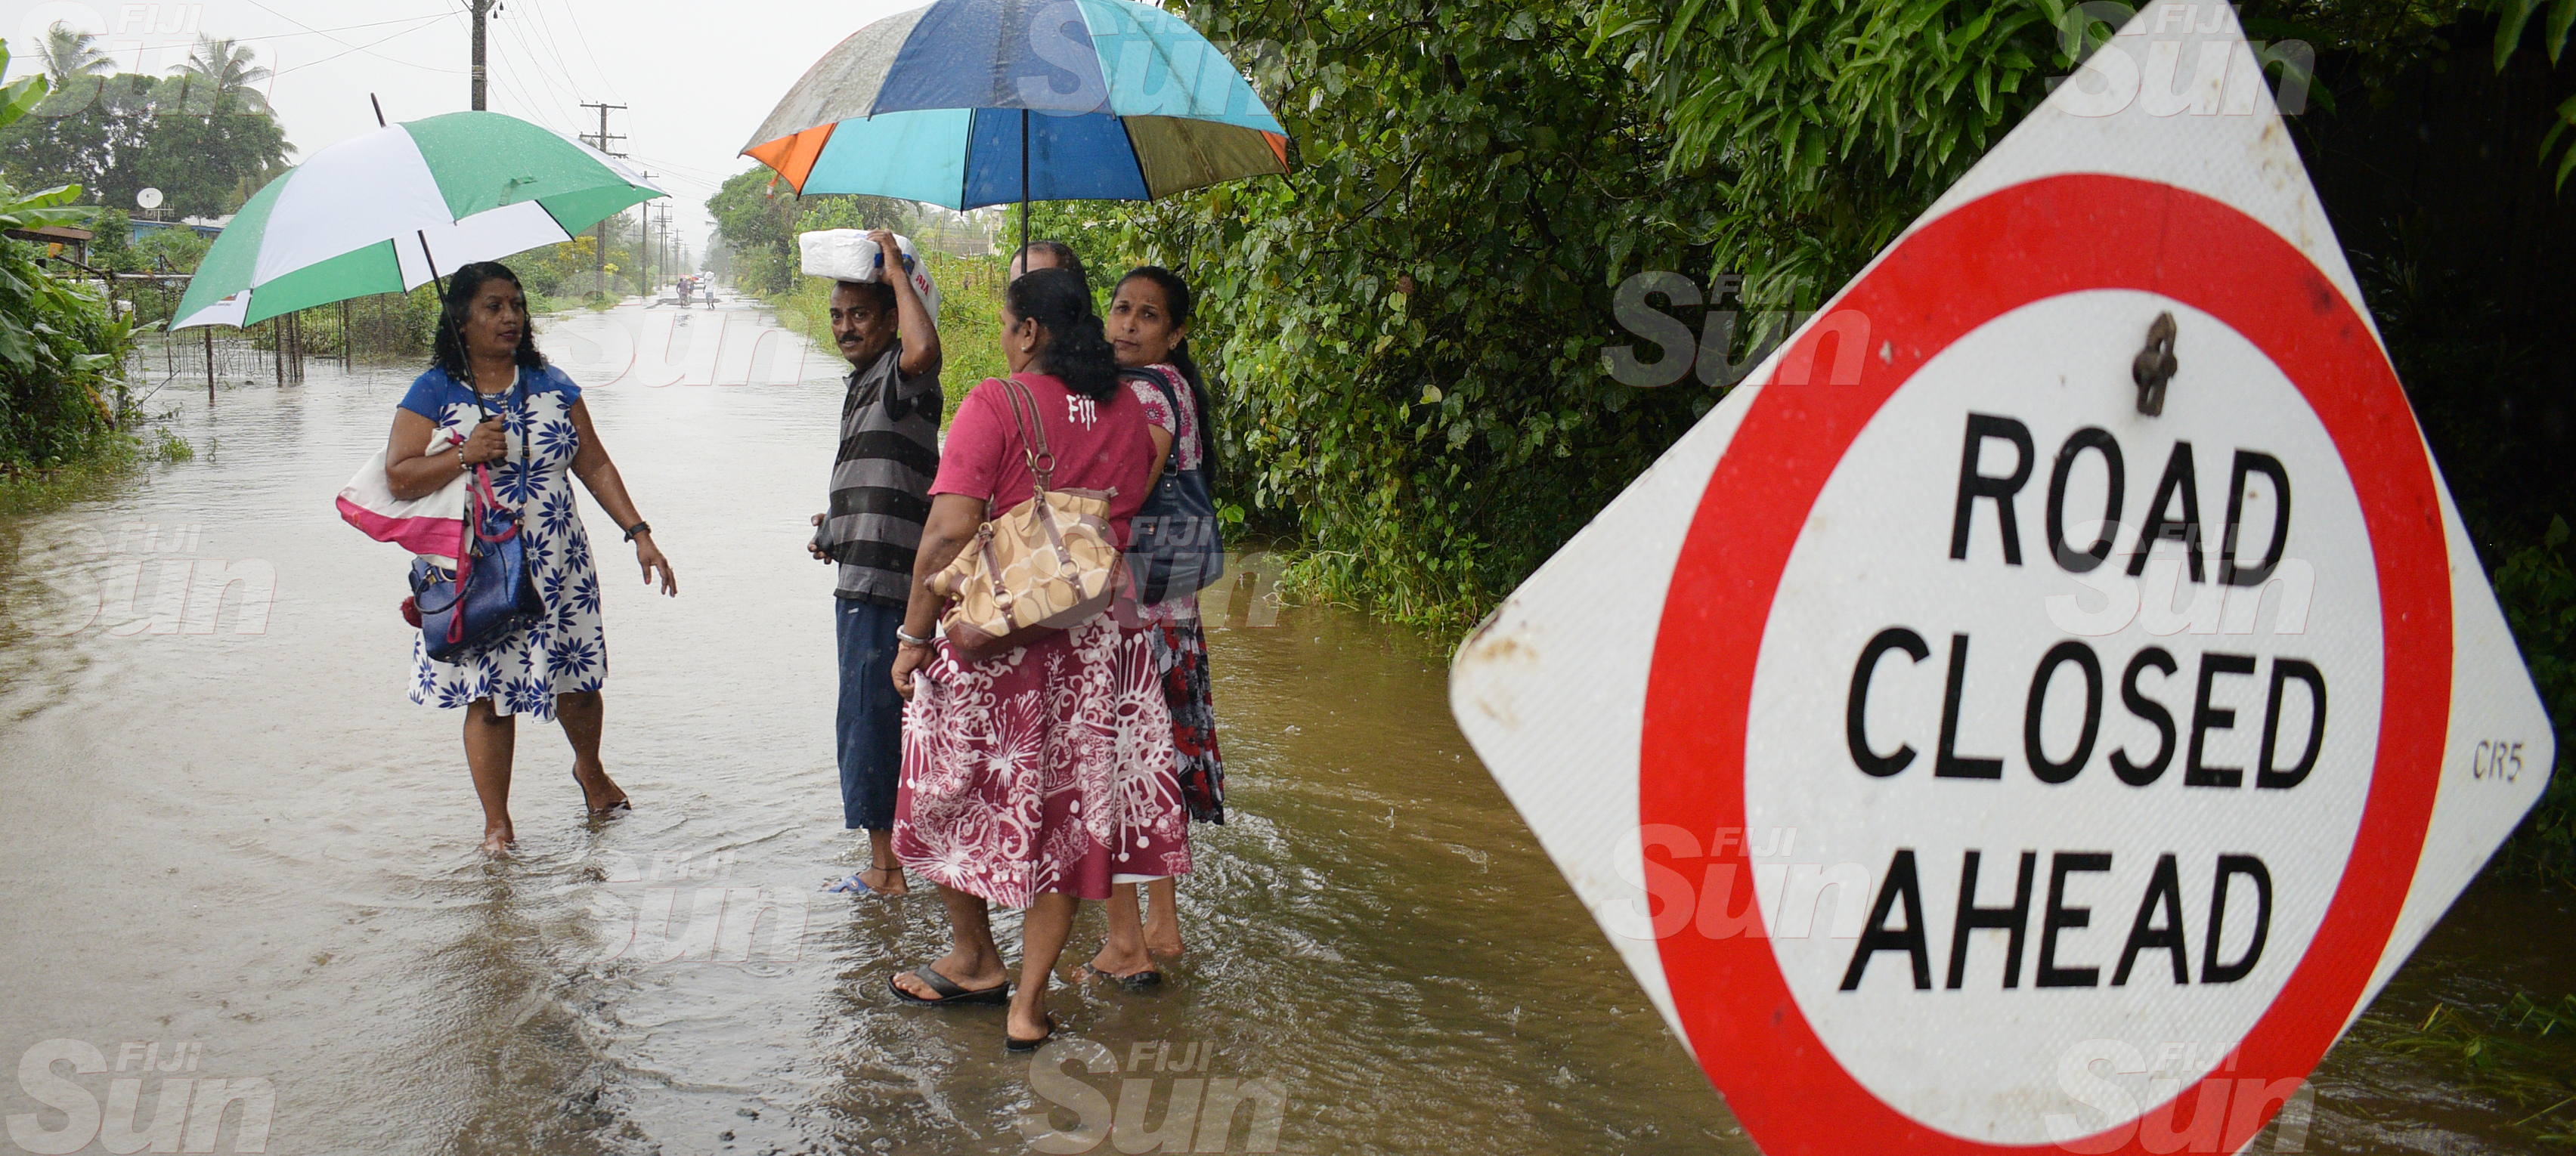 Naduru Road residents of Nausori had to walk through the flooded road as their road was closed dur to flooding on March 20, 2020. Photo: Ronald Kumar.